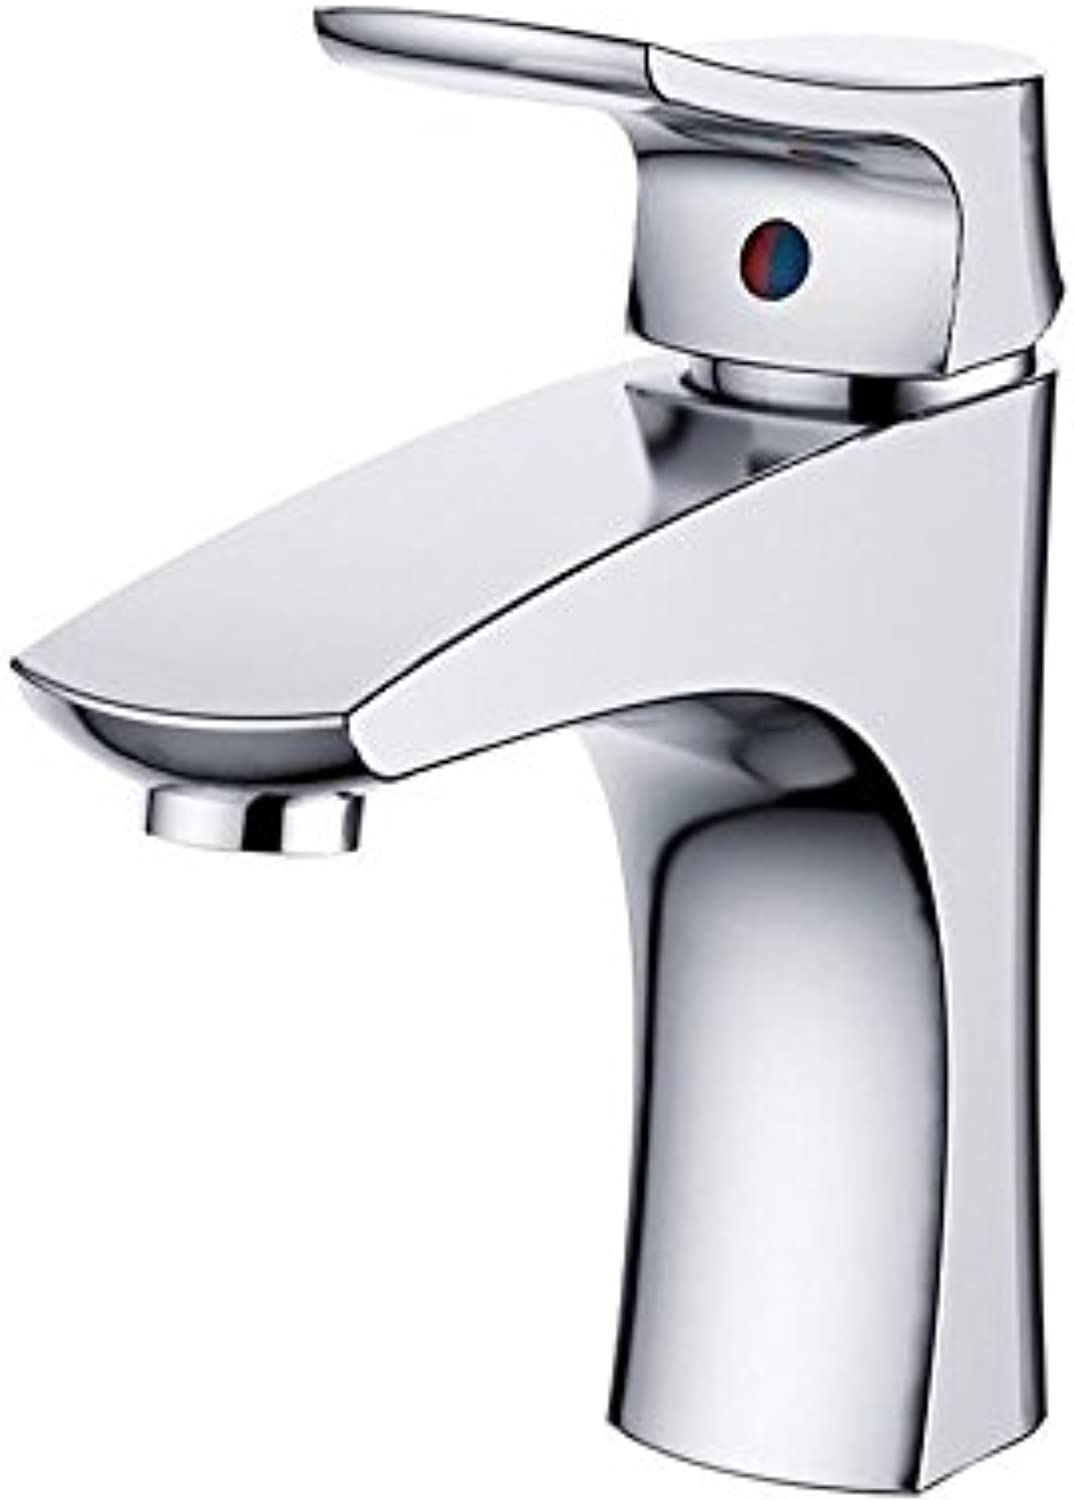 Makej New Basin Faucet Bathroom Basin Taps Basin Mixer Waterfall Bathroom Chrome Cold and Hot Water Tap Deck Mounted